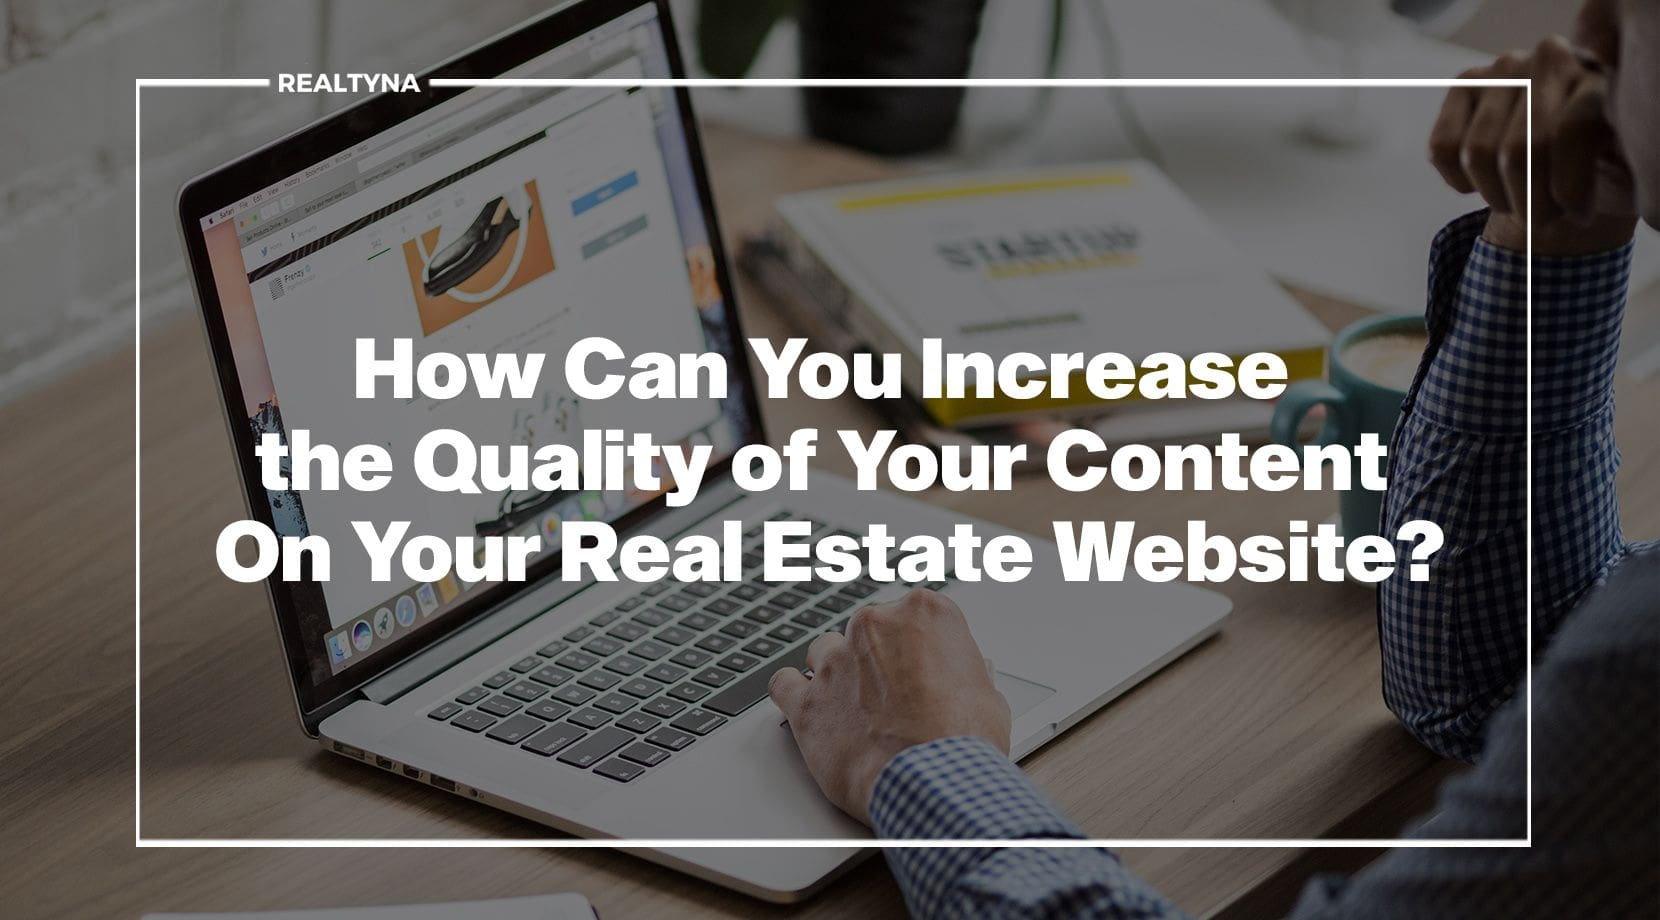 How Can You Increase the Quality of Your Content On Your Real Estate Website?